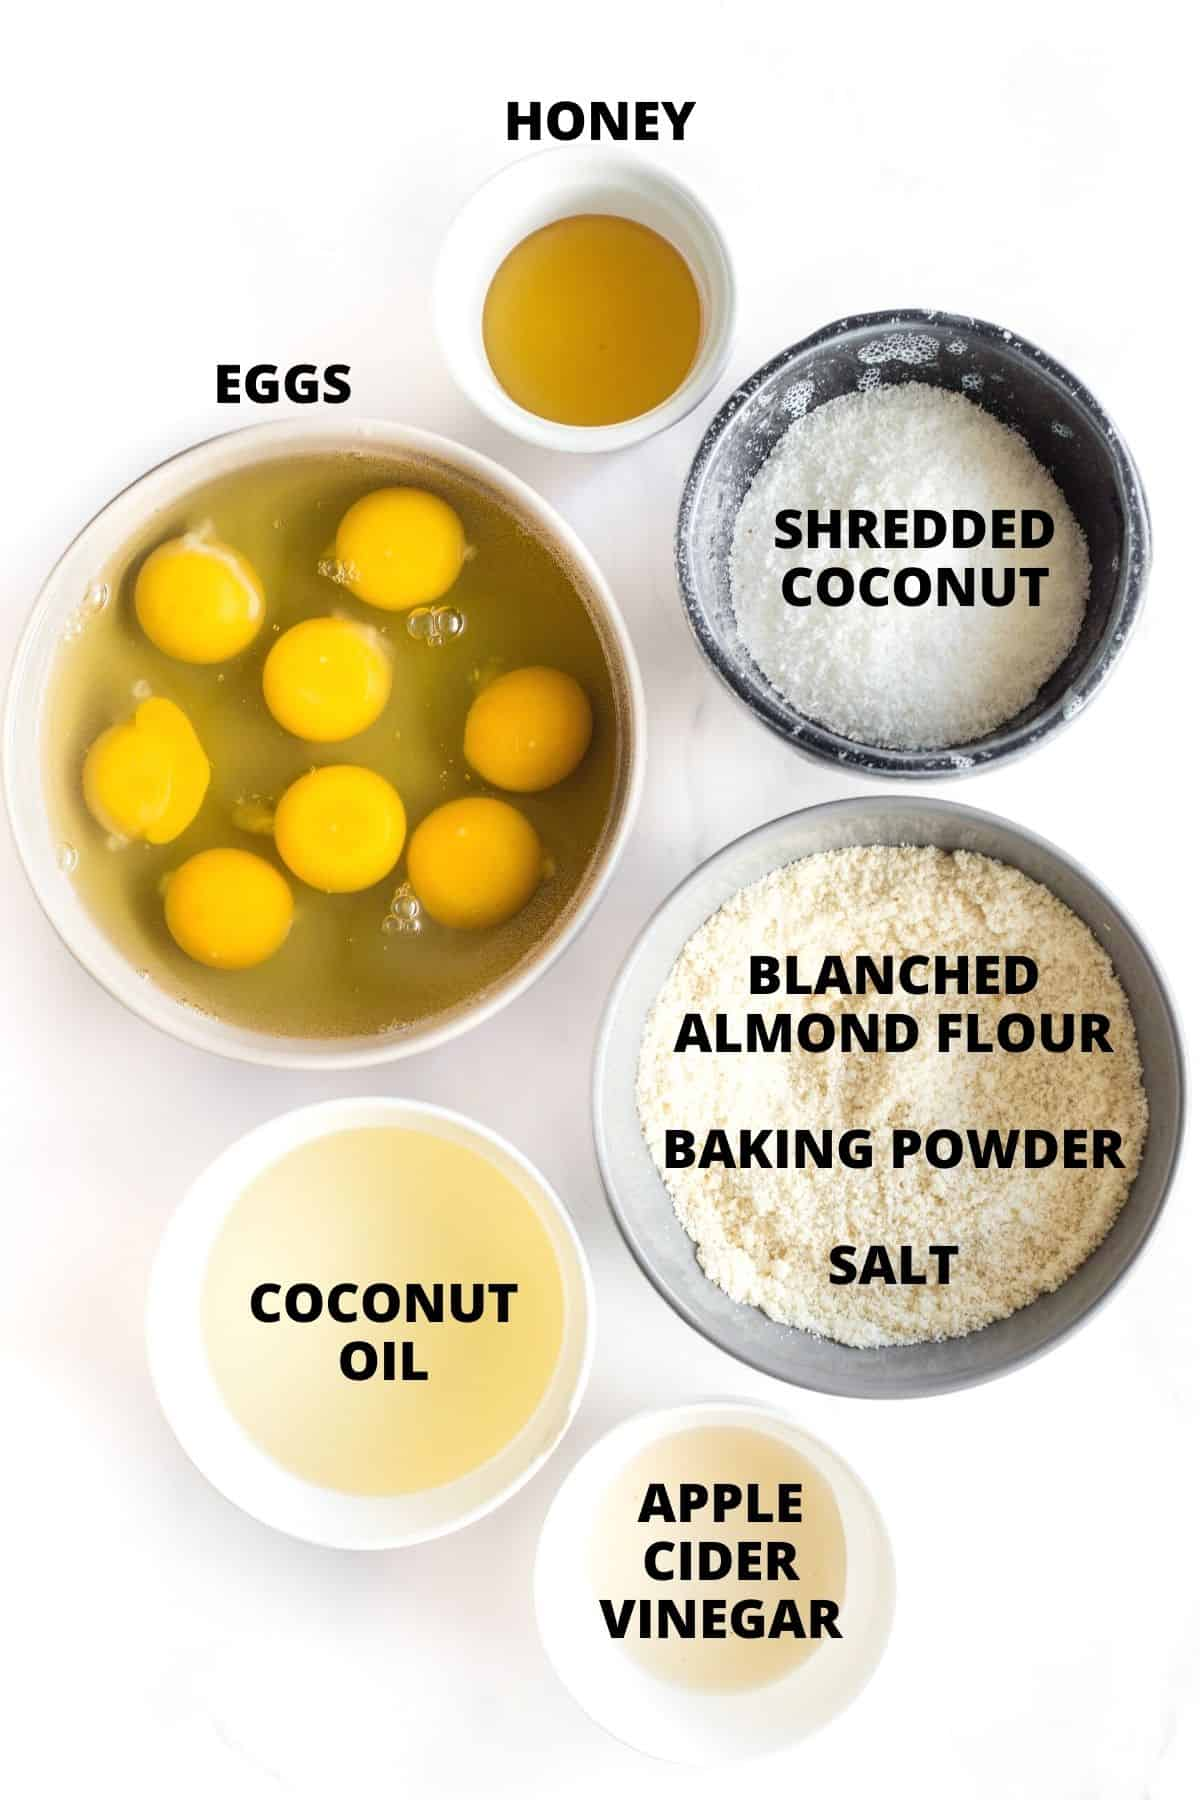 Labeled ingredients for almond flour bread laid out on marble board.